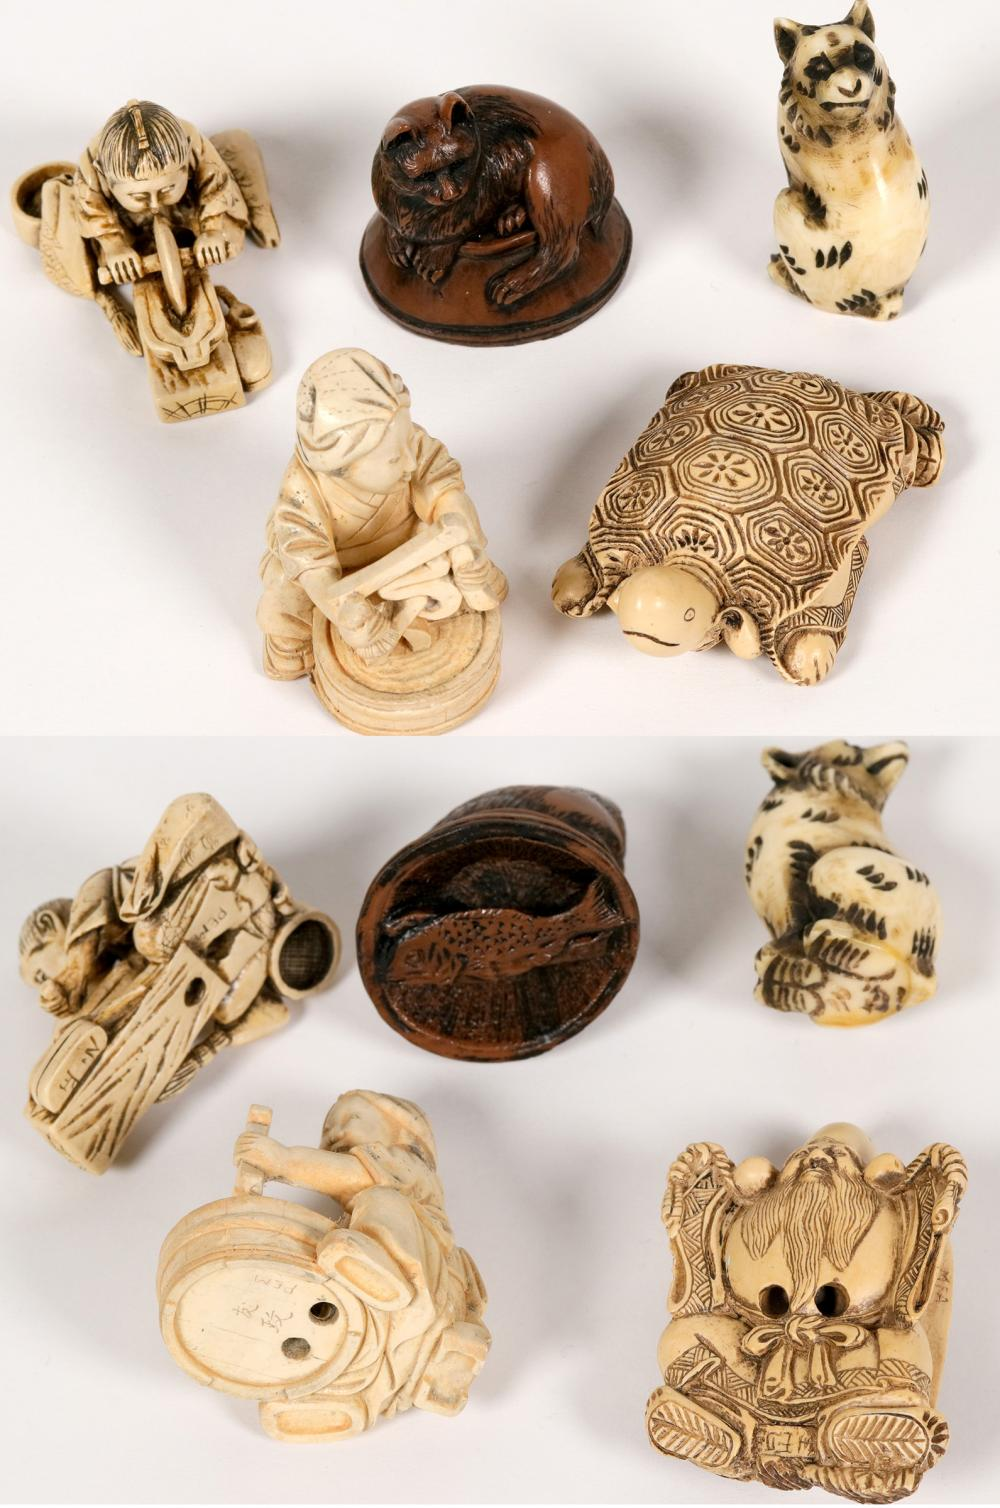 Sold Price Japanese Netsuke Carved Resin Replicas 5 Pieces 112768 February 5 0120 8 00 Am Pst